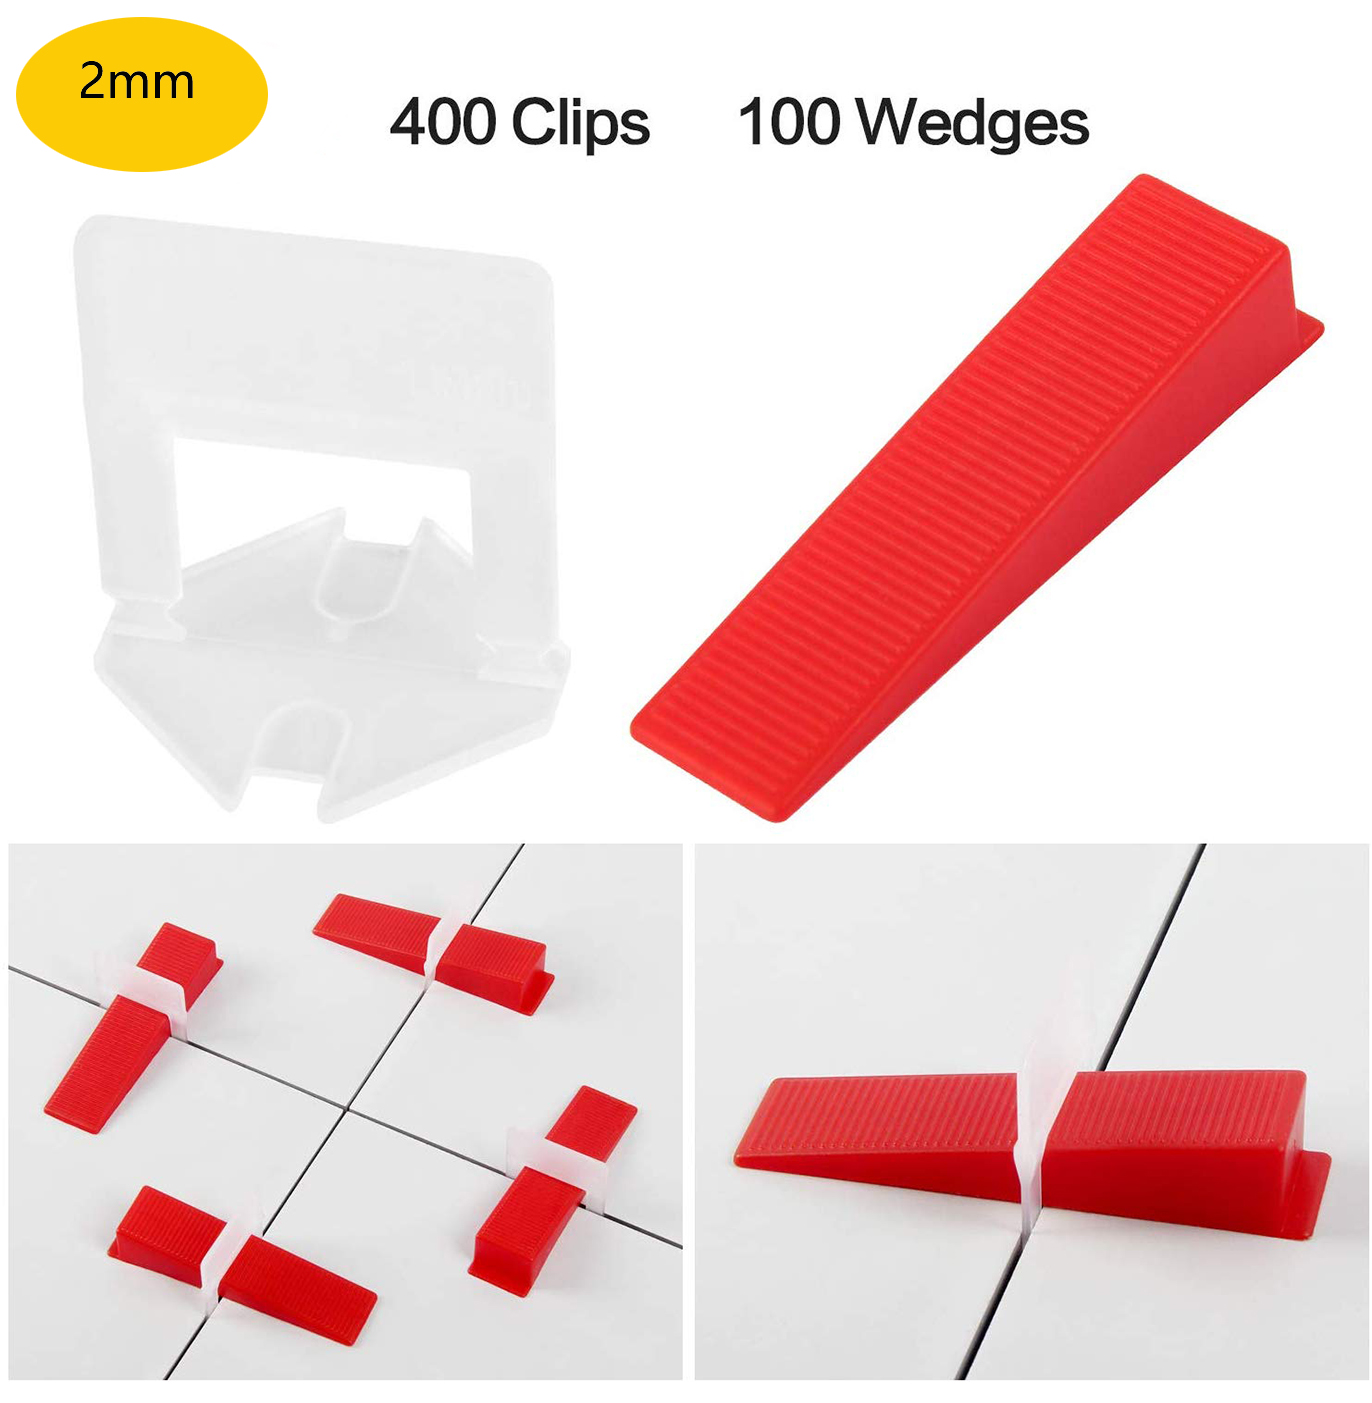 2mm Tile Leveling System 400pcs Clips+100pcs Reusable Wedges Self Leveling Plastic Tile SpacersT Lock For Floor Wall Ceramics